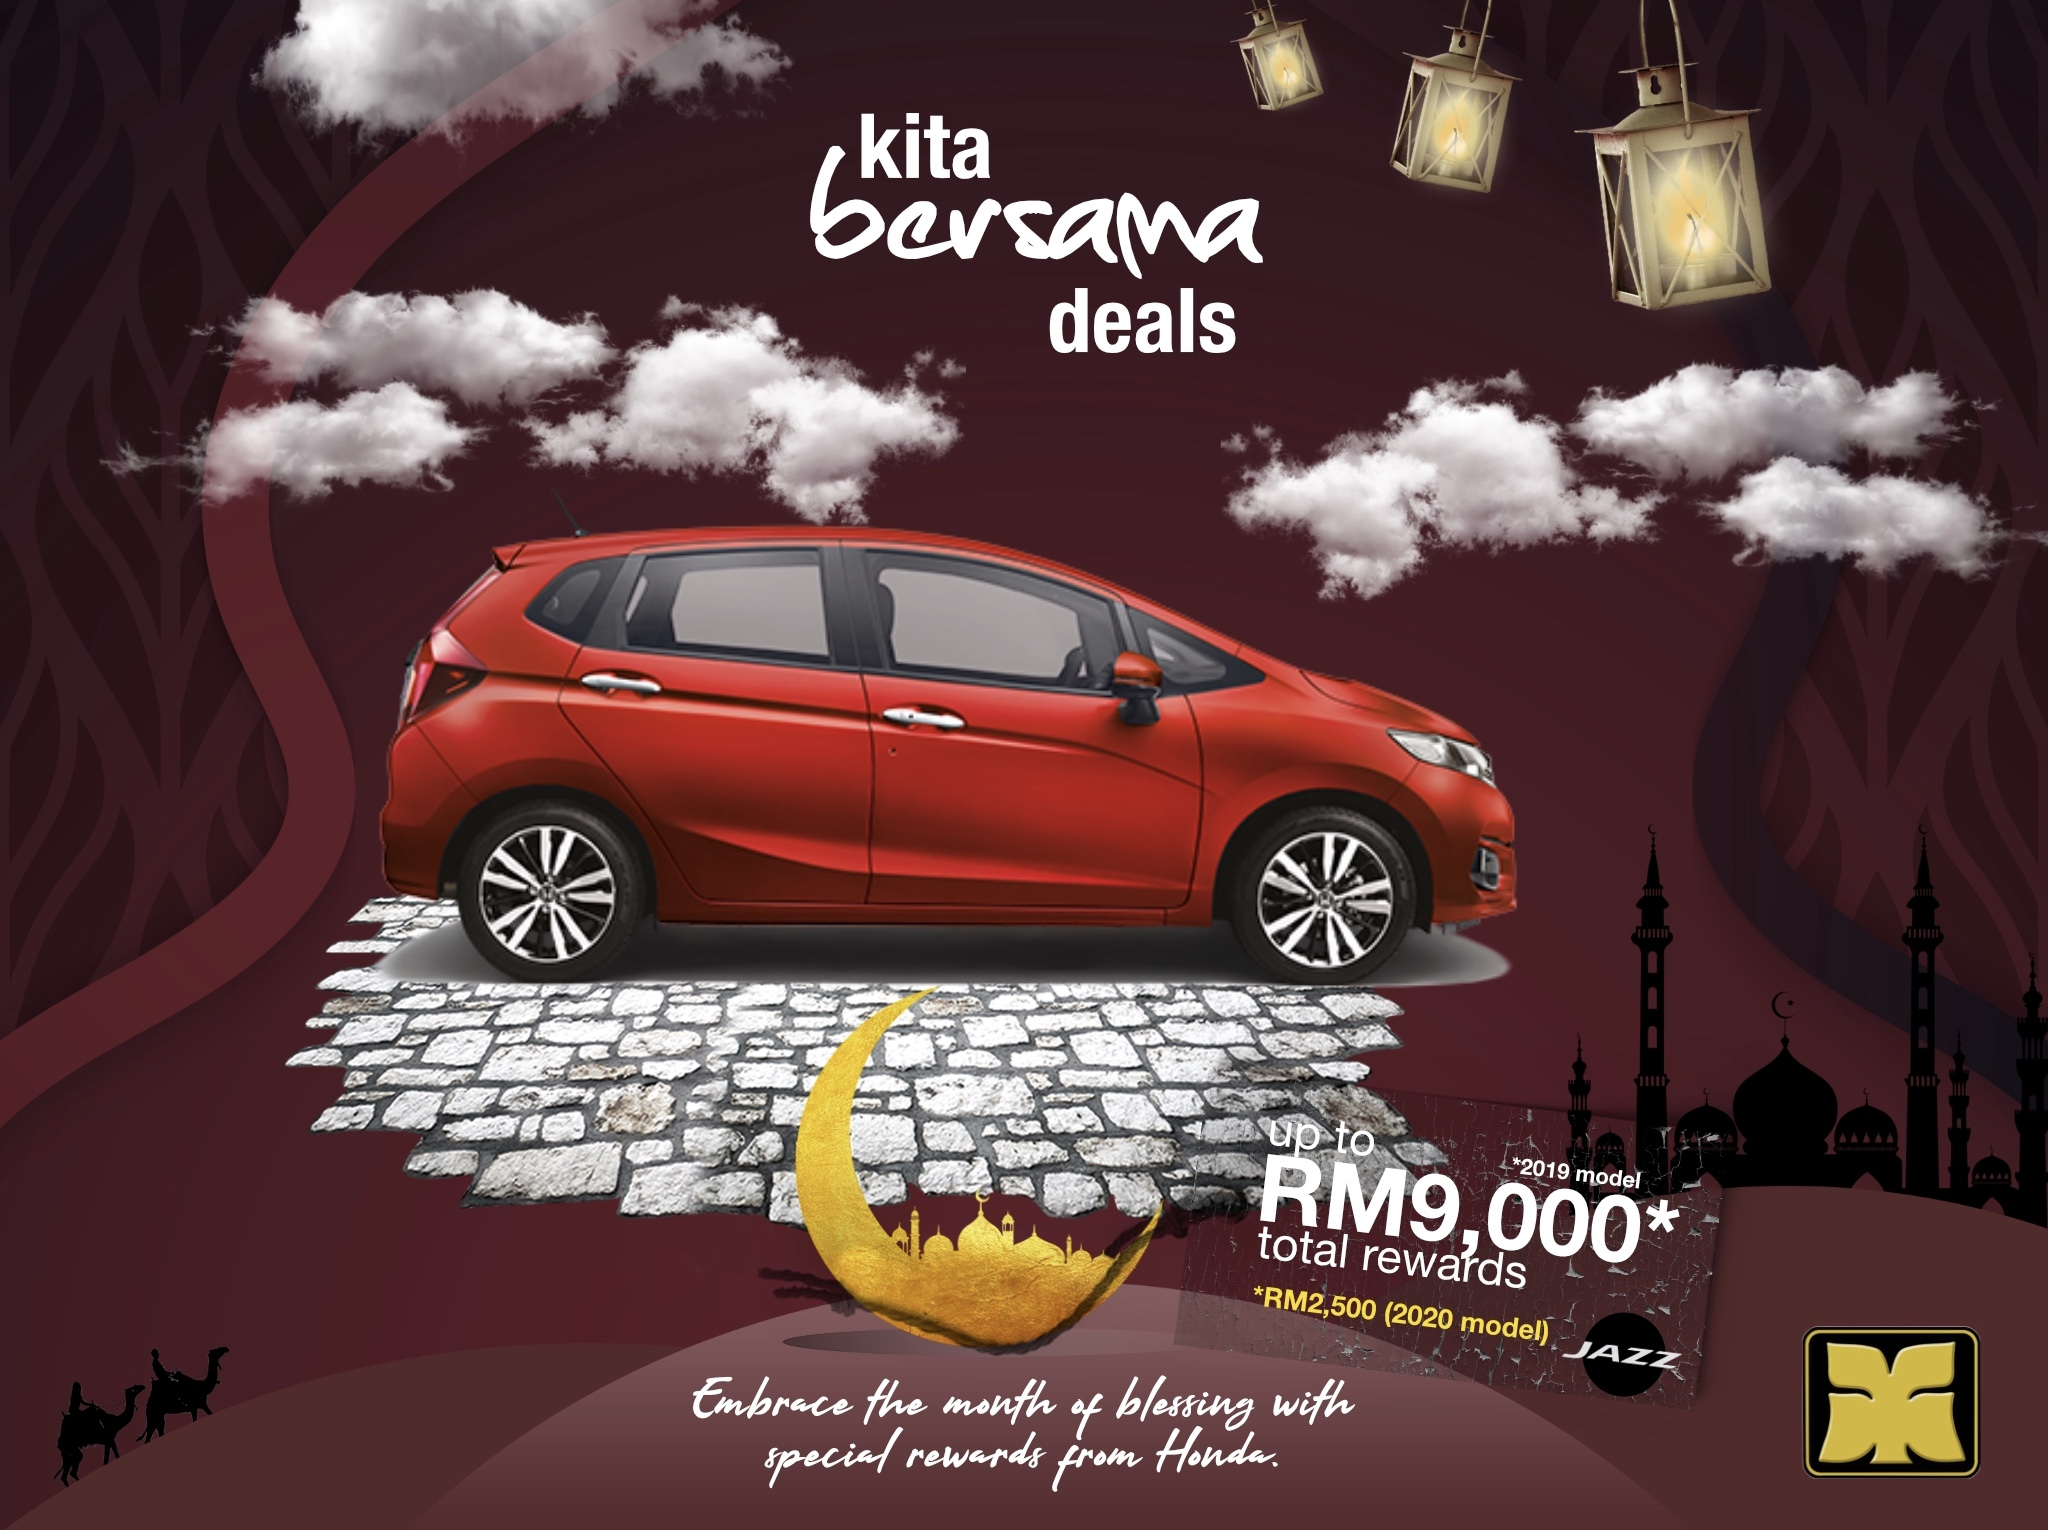 Month of Blessing Kita Bersama Deals Yong Ming Honda Jazz